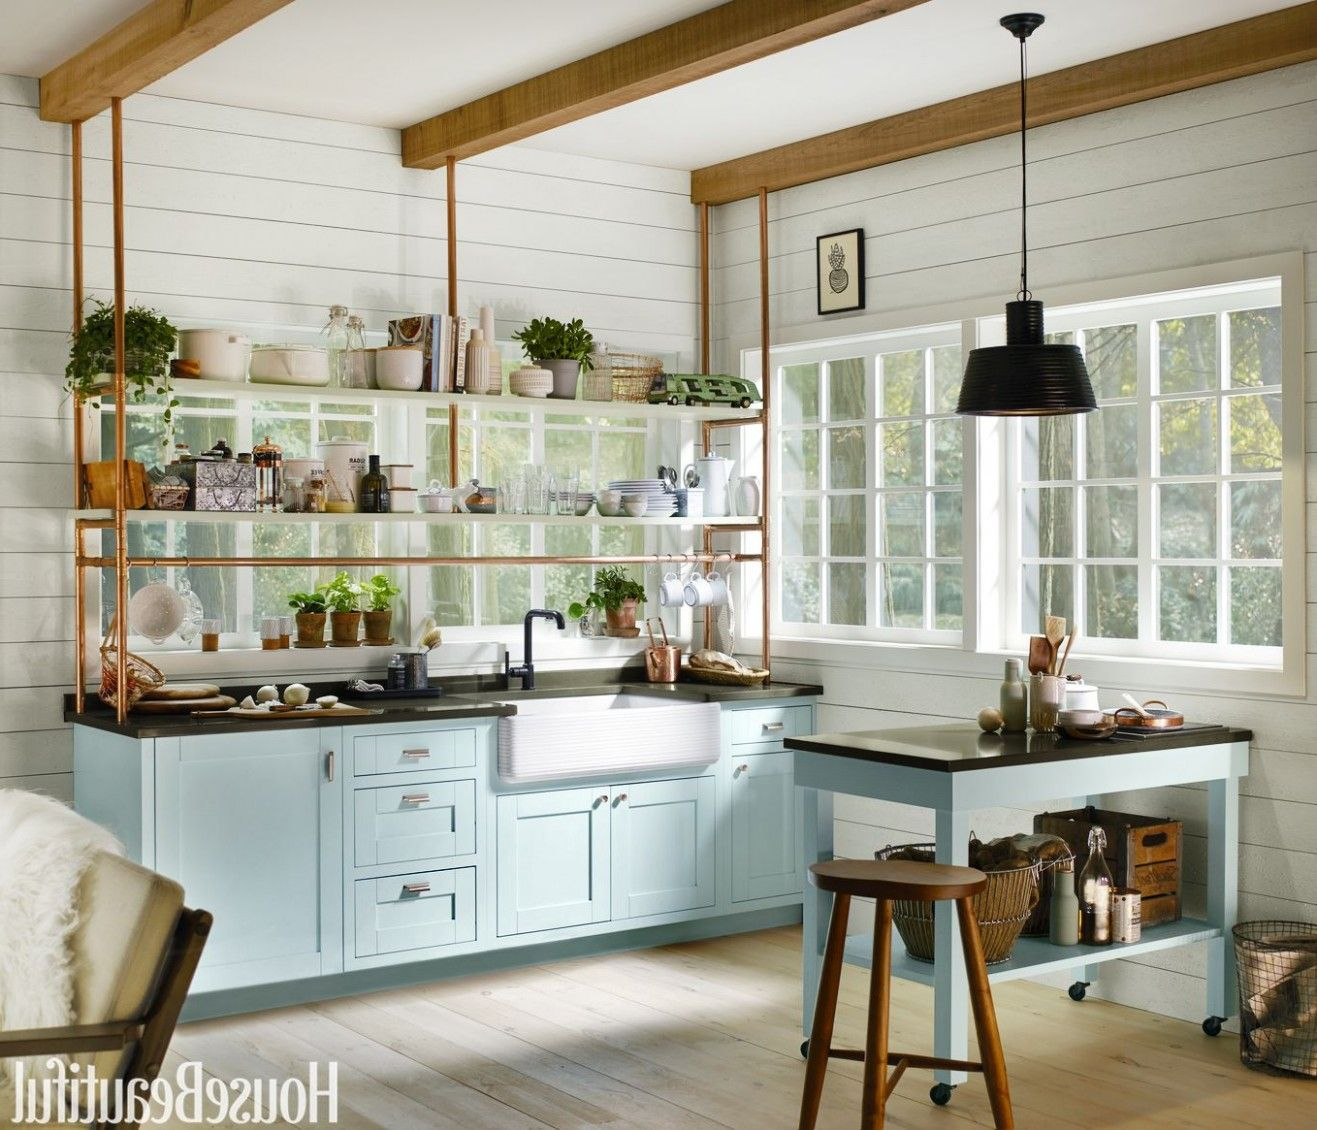 tiny kitchen designed by kim lewis house beautiful kitchen tiny kitchen design kitchen design on kitchen remodel apps id=95206